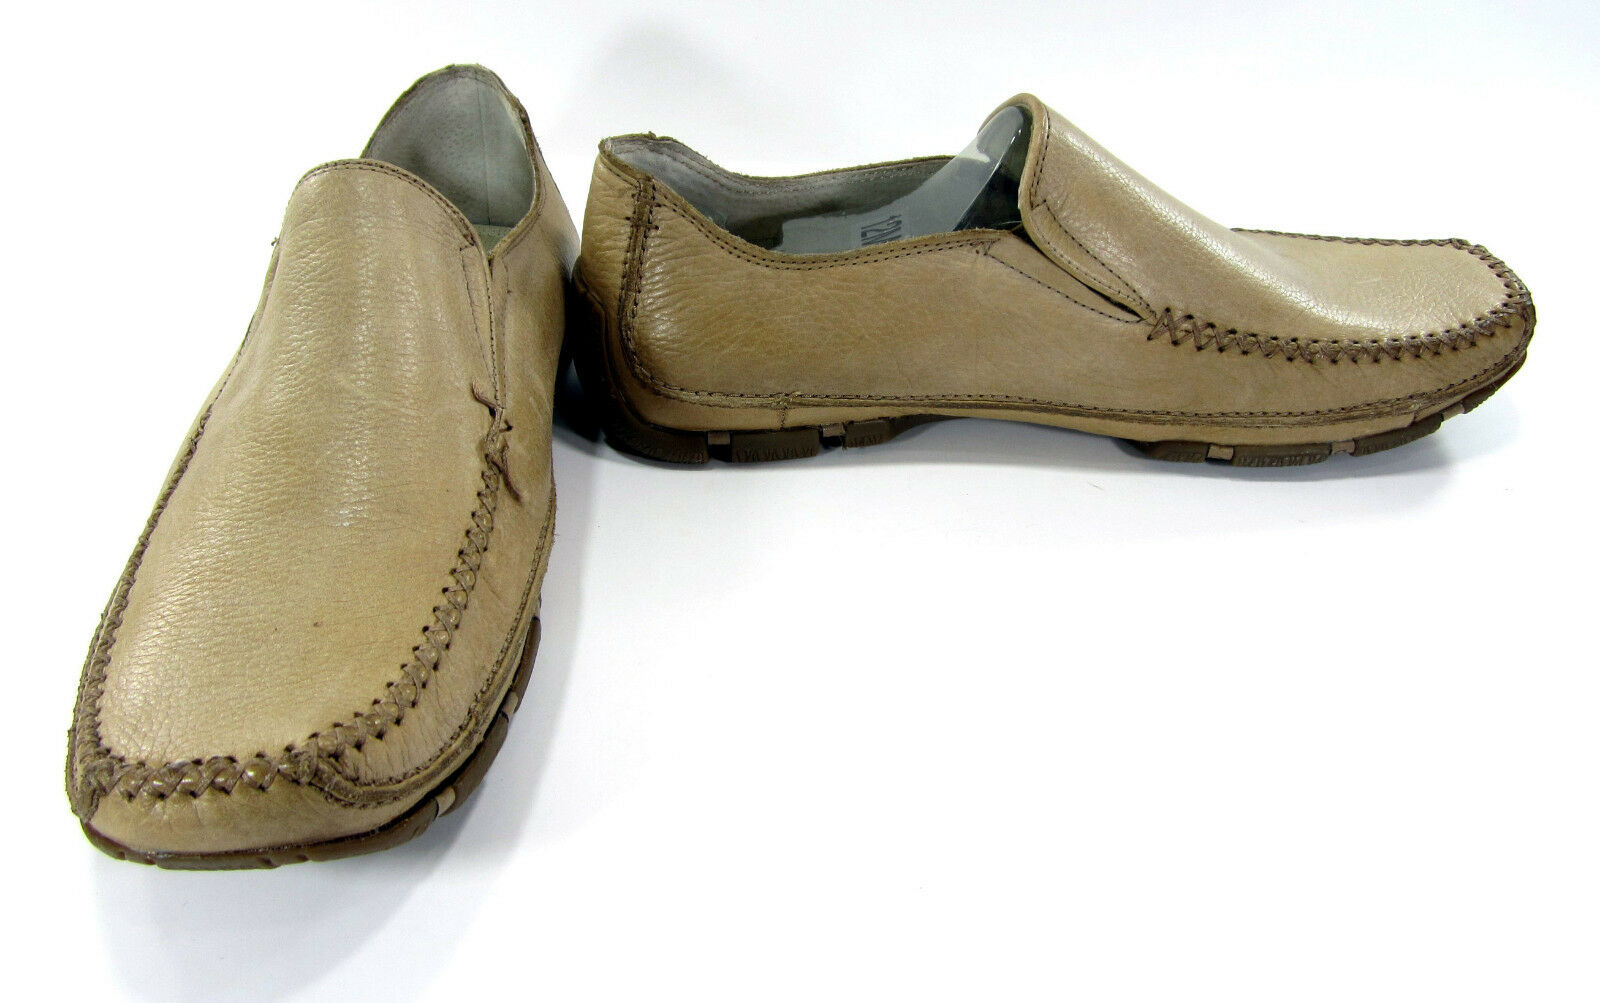 GBX shoes Havana Loafer Leather Tan Light Brown Dress Size 12